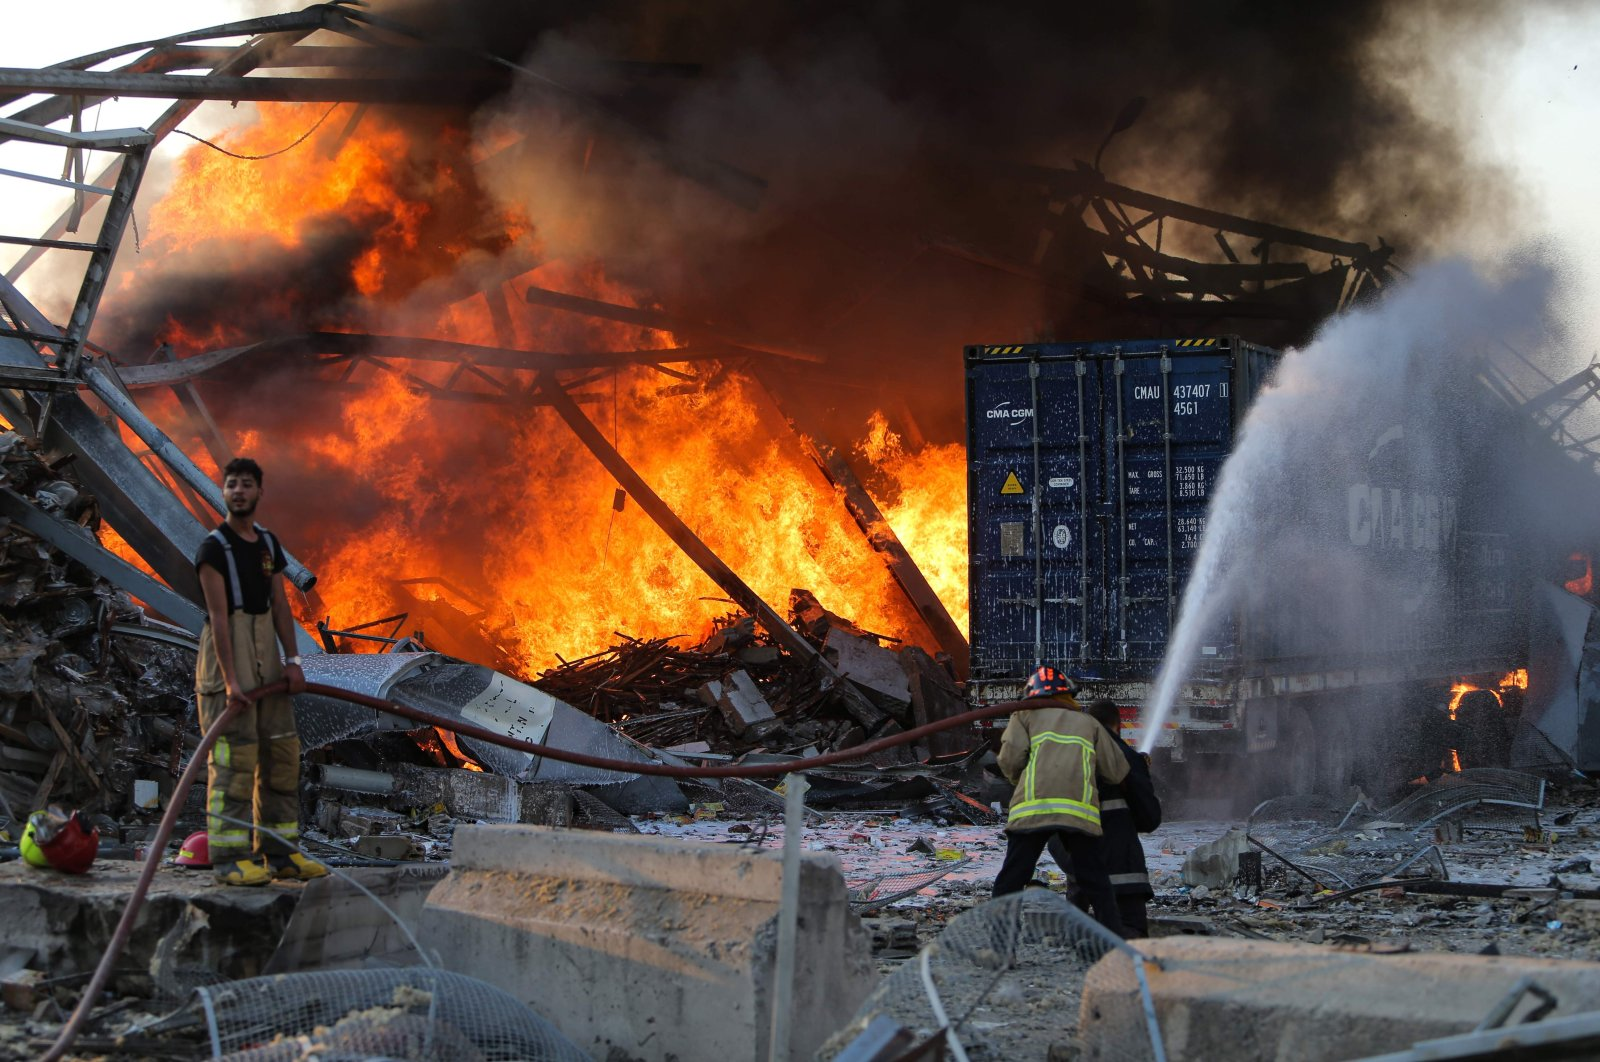 Firefighters douse a blaze at the scene of an explosion at the port of Lebanon's capital Beirut, Aug. 4, 2020. (AFP)